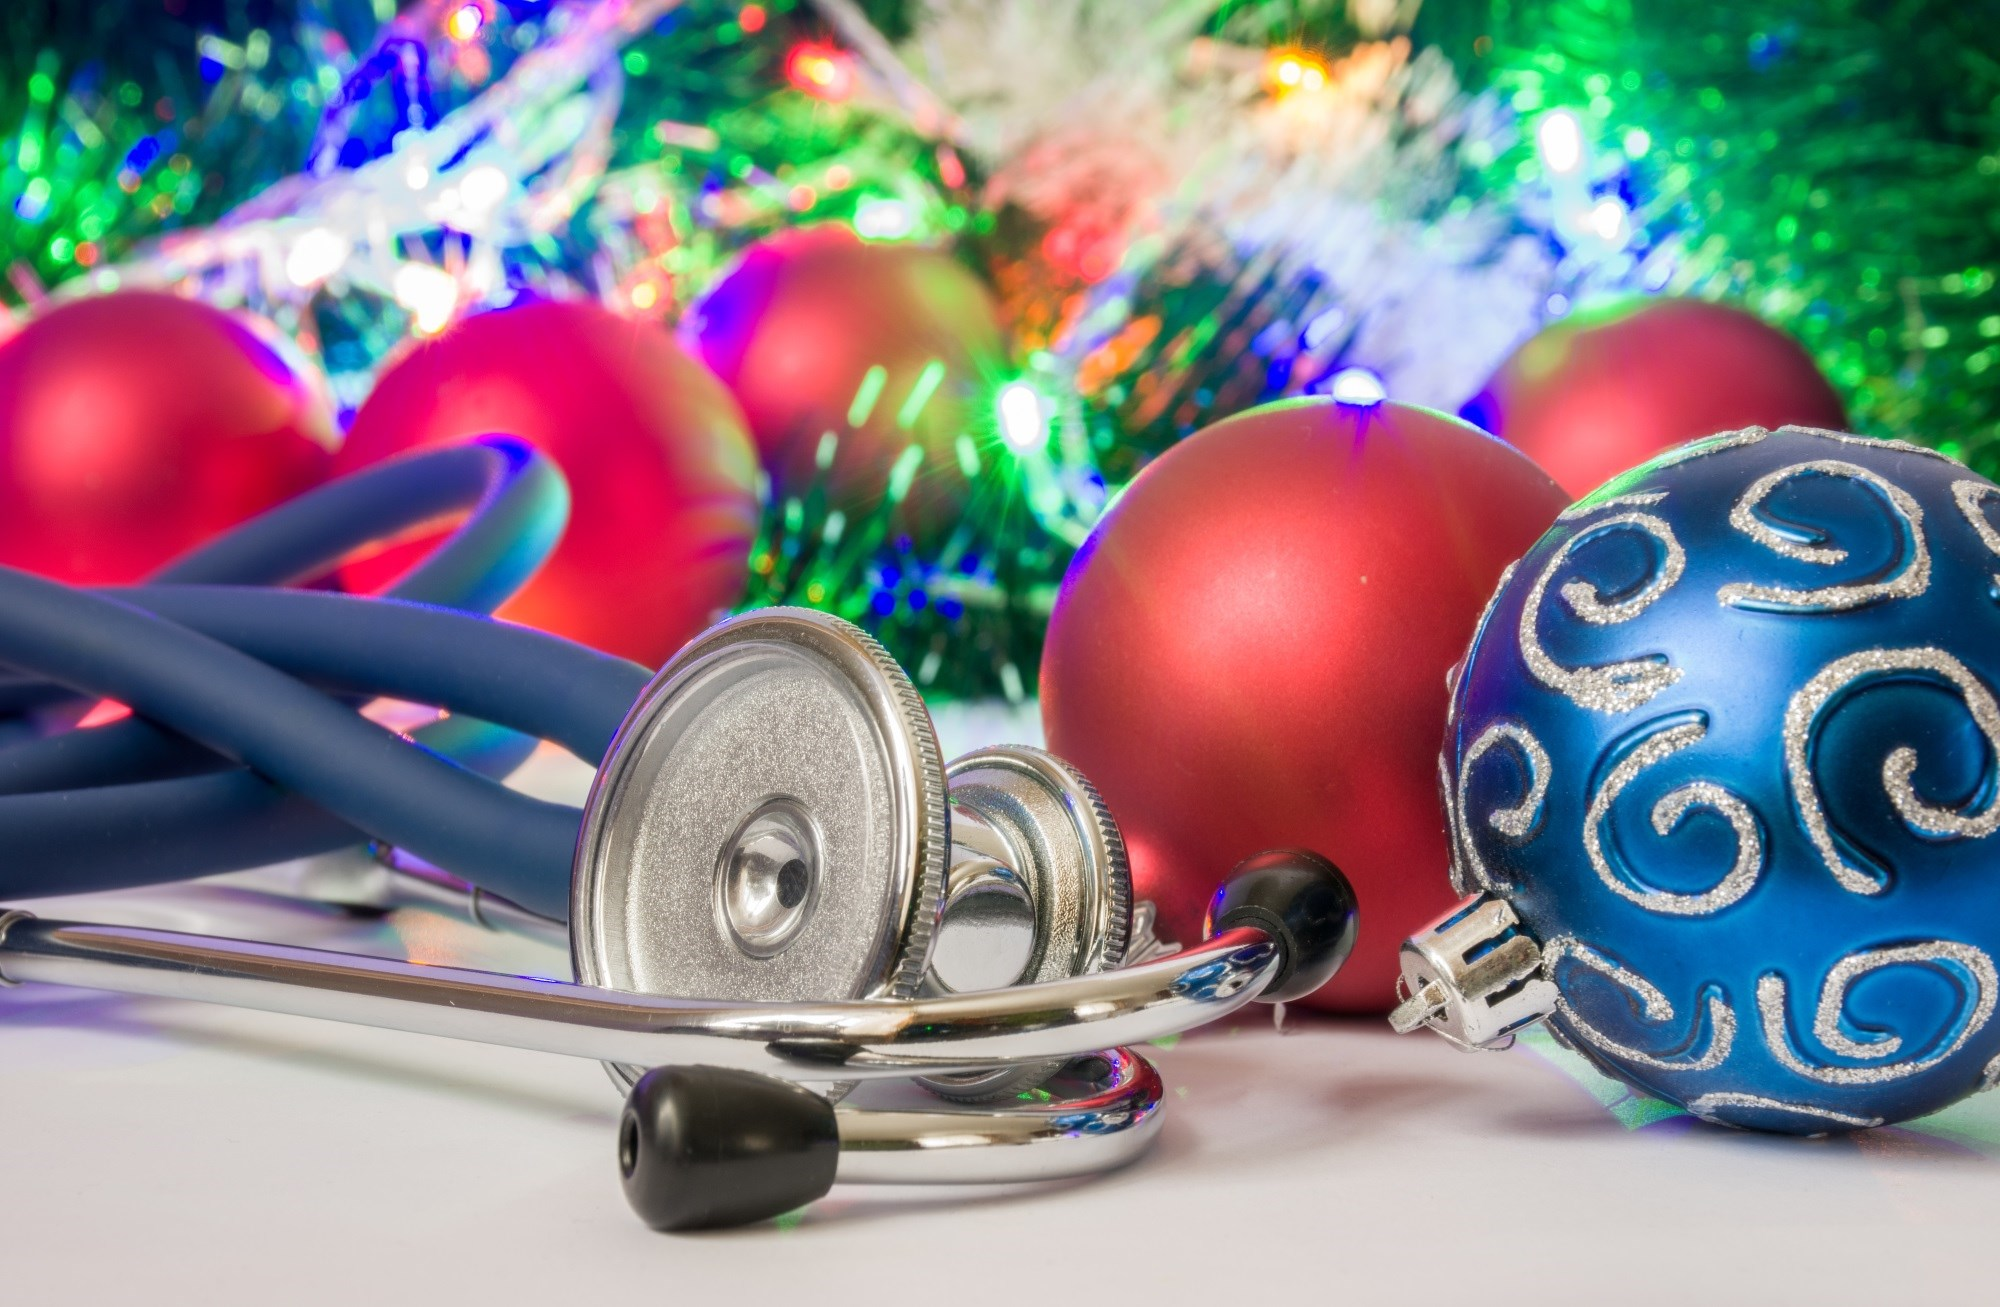 Coping With Challenges When Working the Holidays